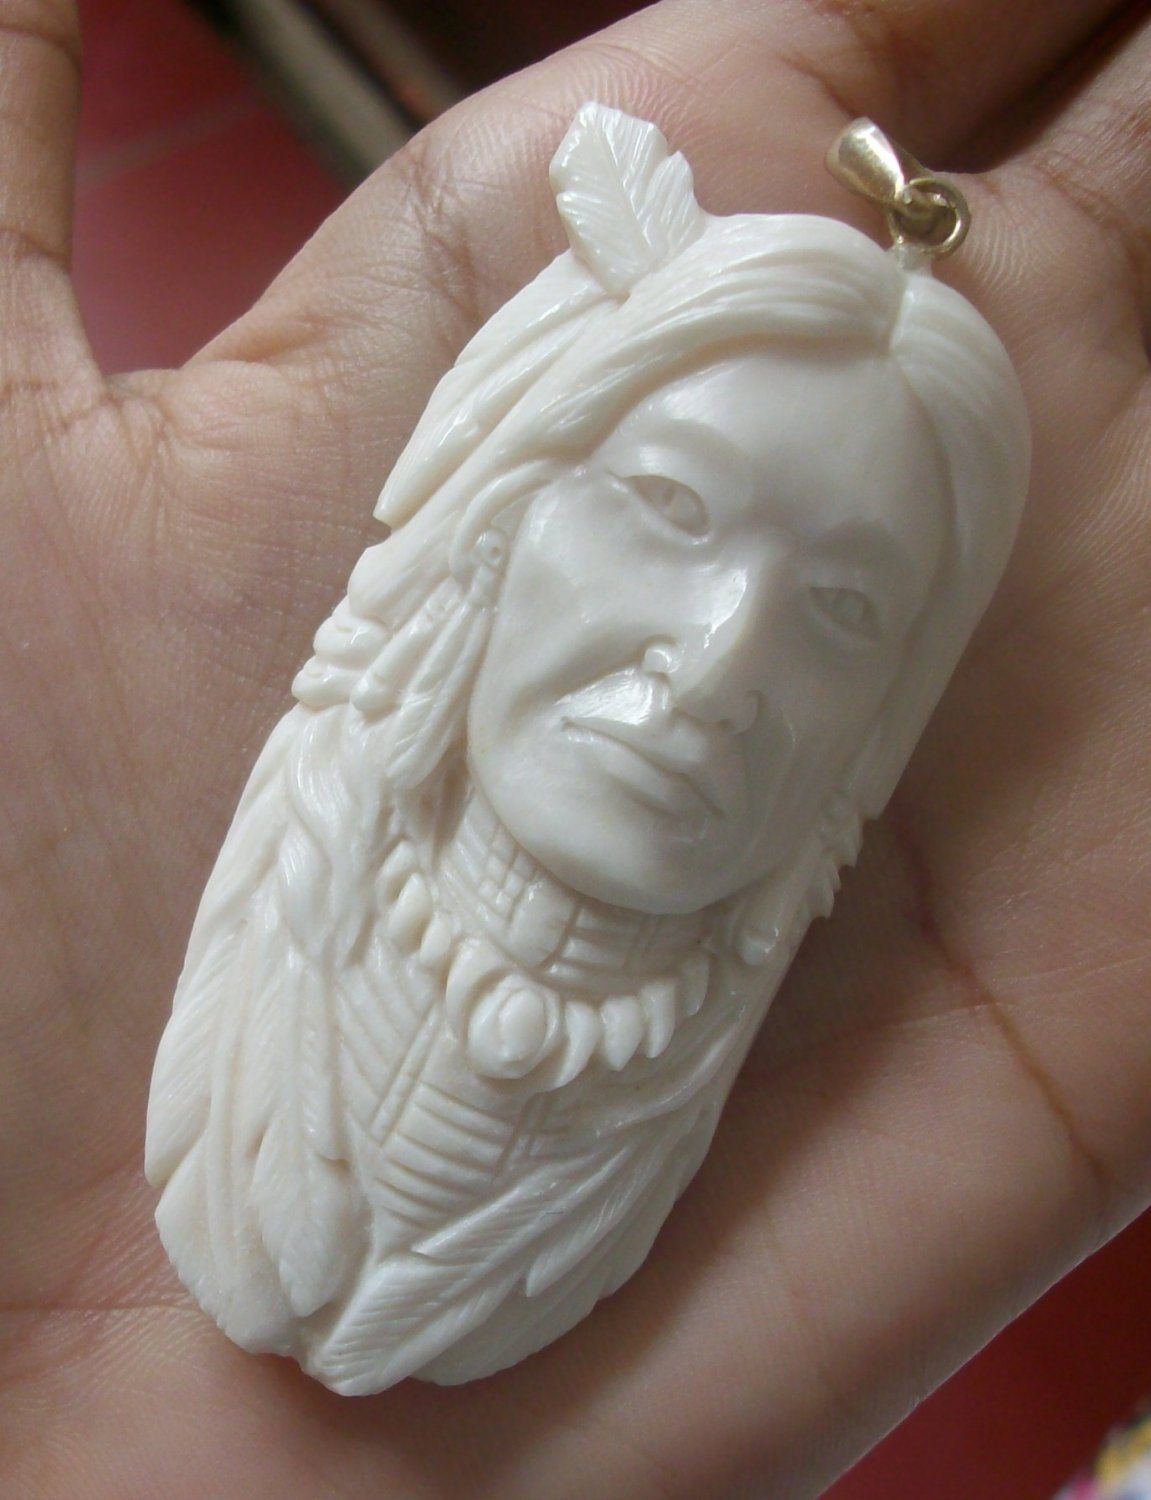 Bali Pendant Necklace INDIAN FACE Old From Buffalo Bone Carving With Silver Bail 925 #r170